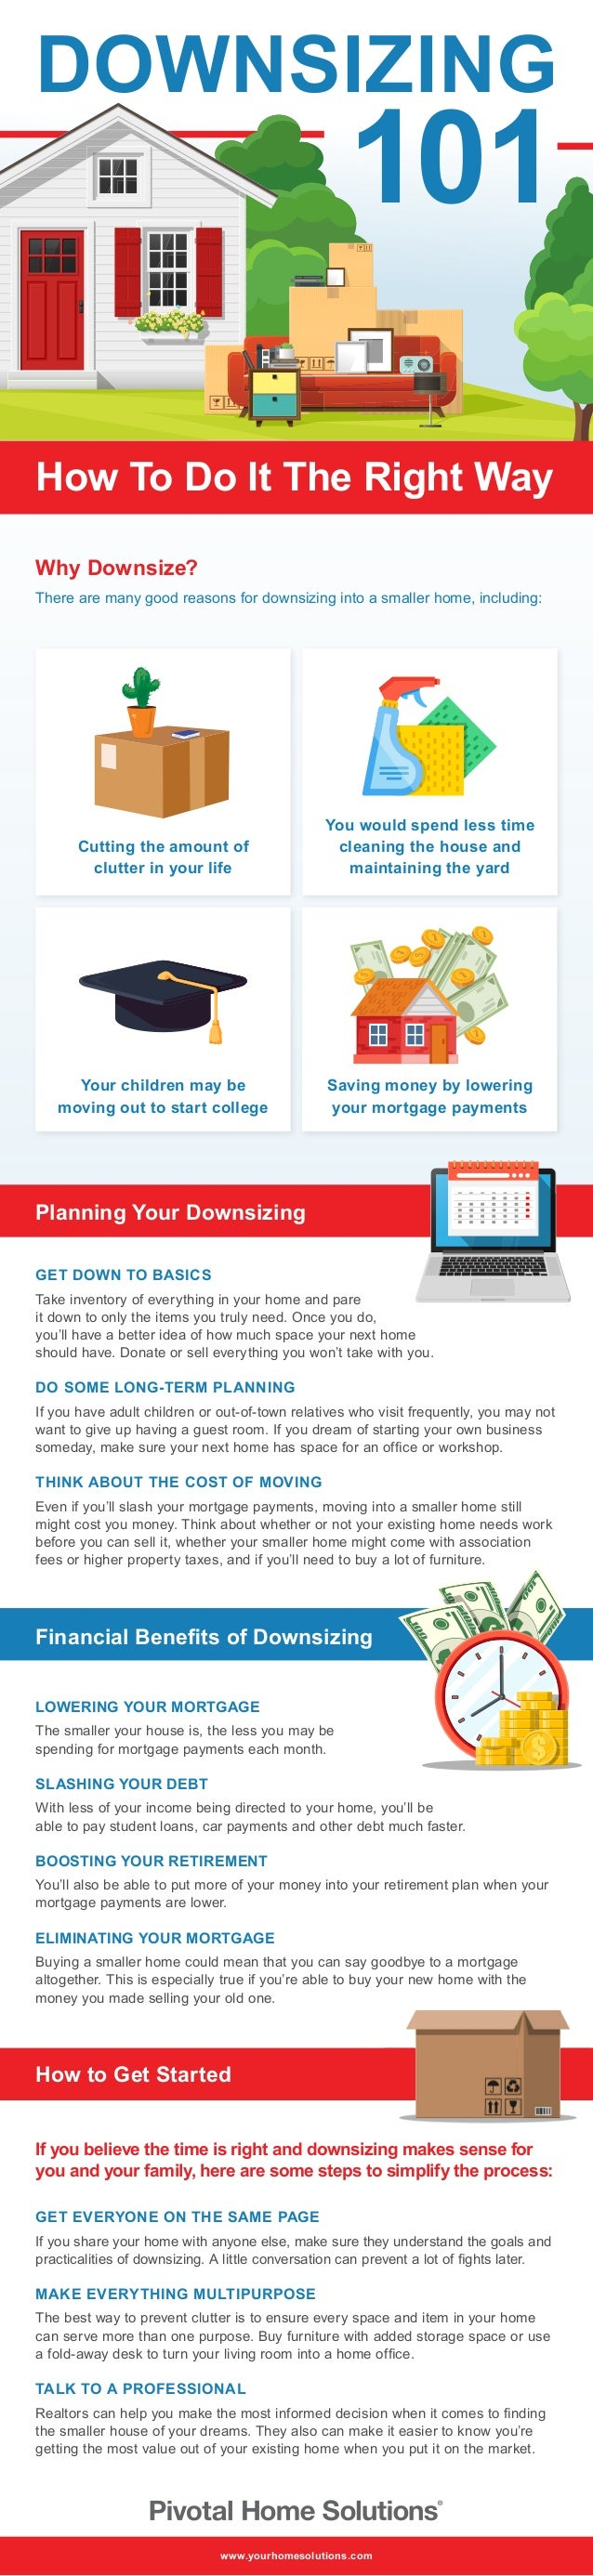 Planning Your Downsizing GET DOWN TO BASICS Take inventory of everything in your home and pare it down to only the items y...